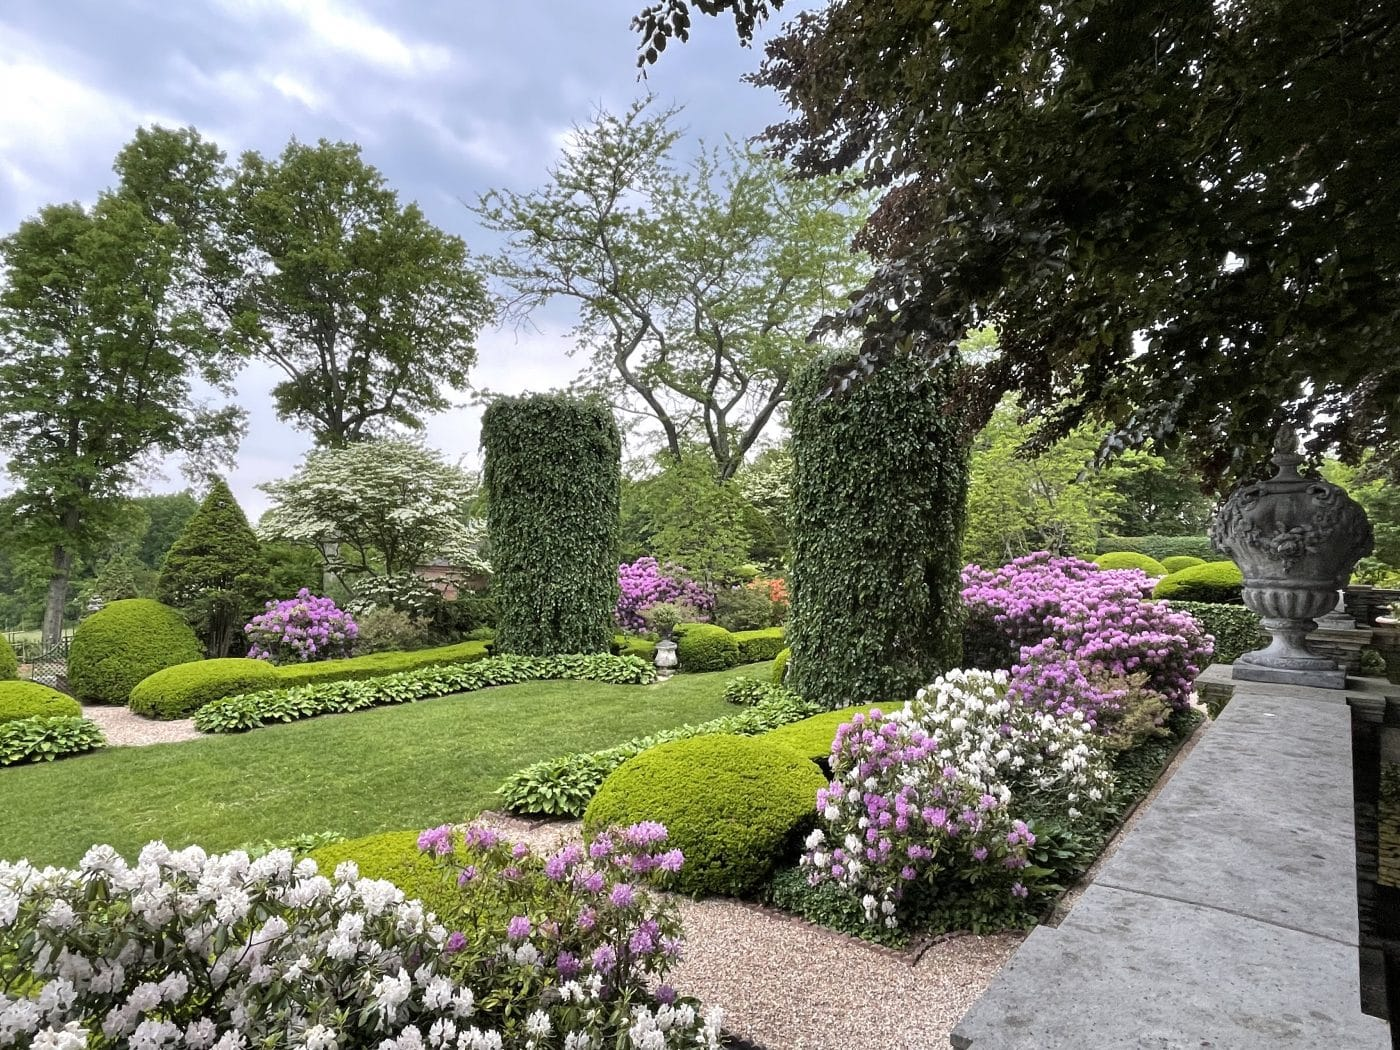 Wethersfield garden with rhododendrons